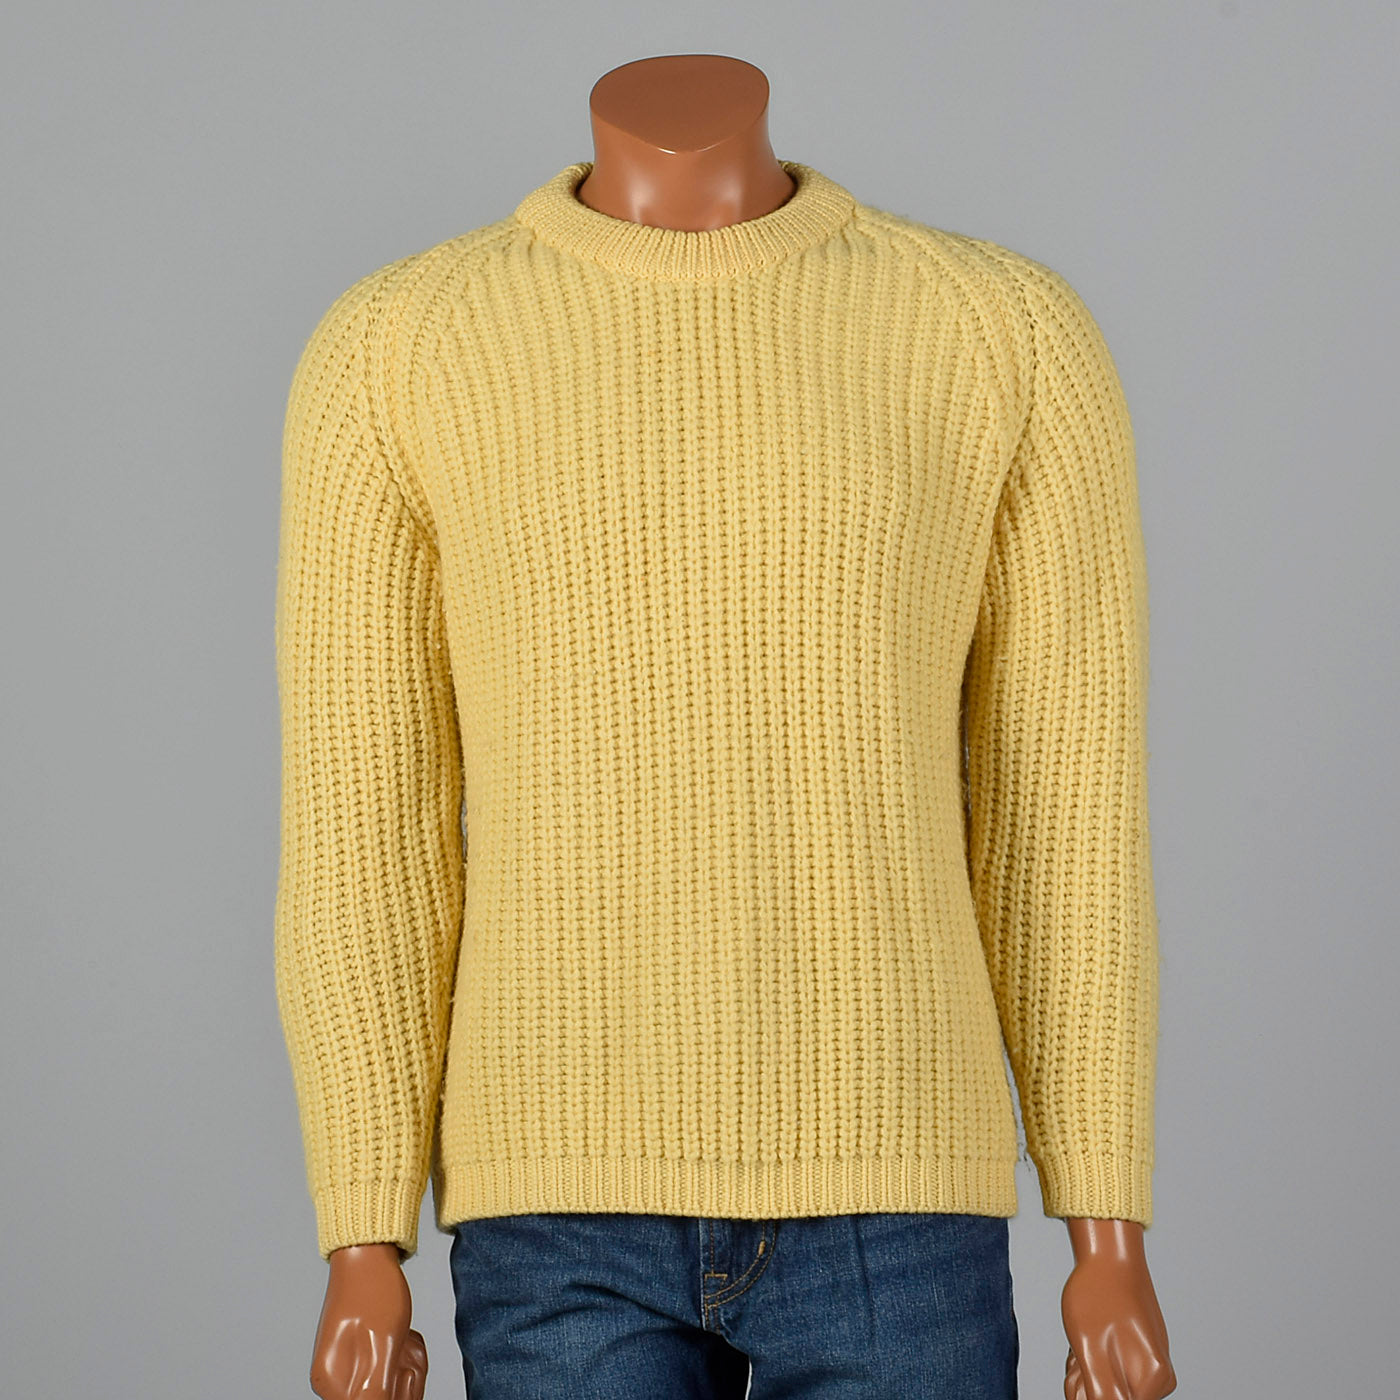 1960s Mens Yellow Chunky Knit Wool Sweater